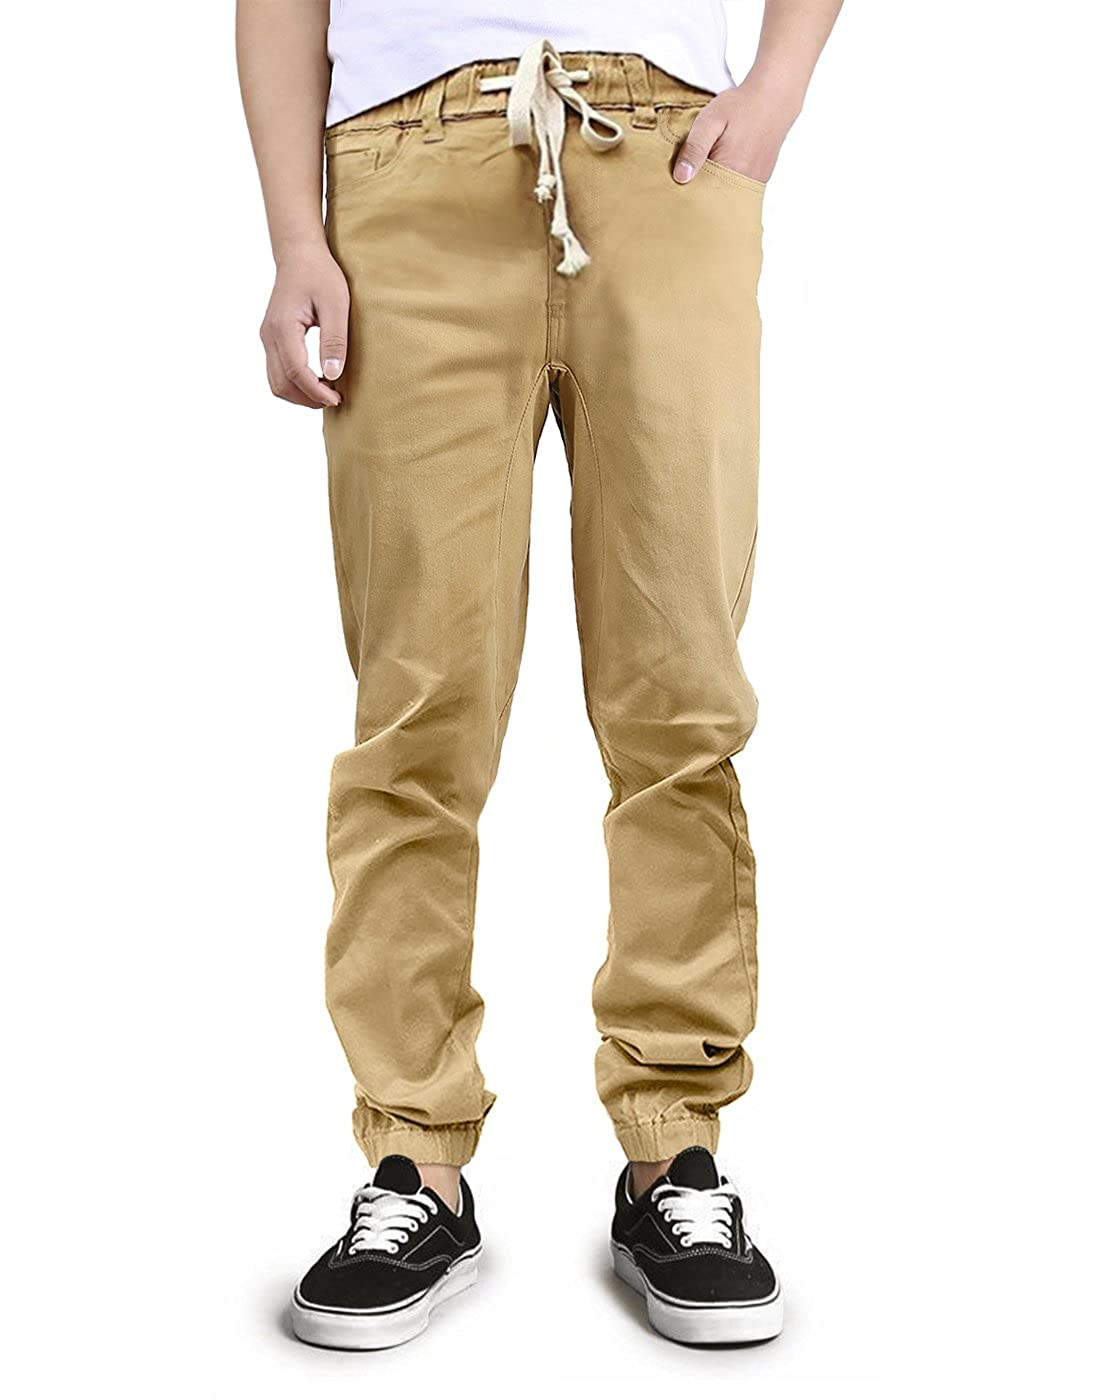 Top 10 Wholesale Elastic Cuff Chinos Chinabrands Com